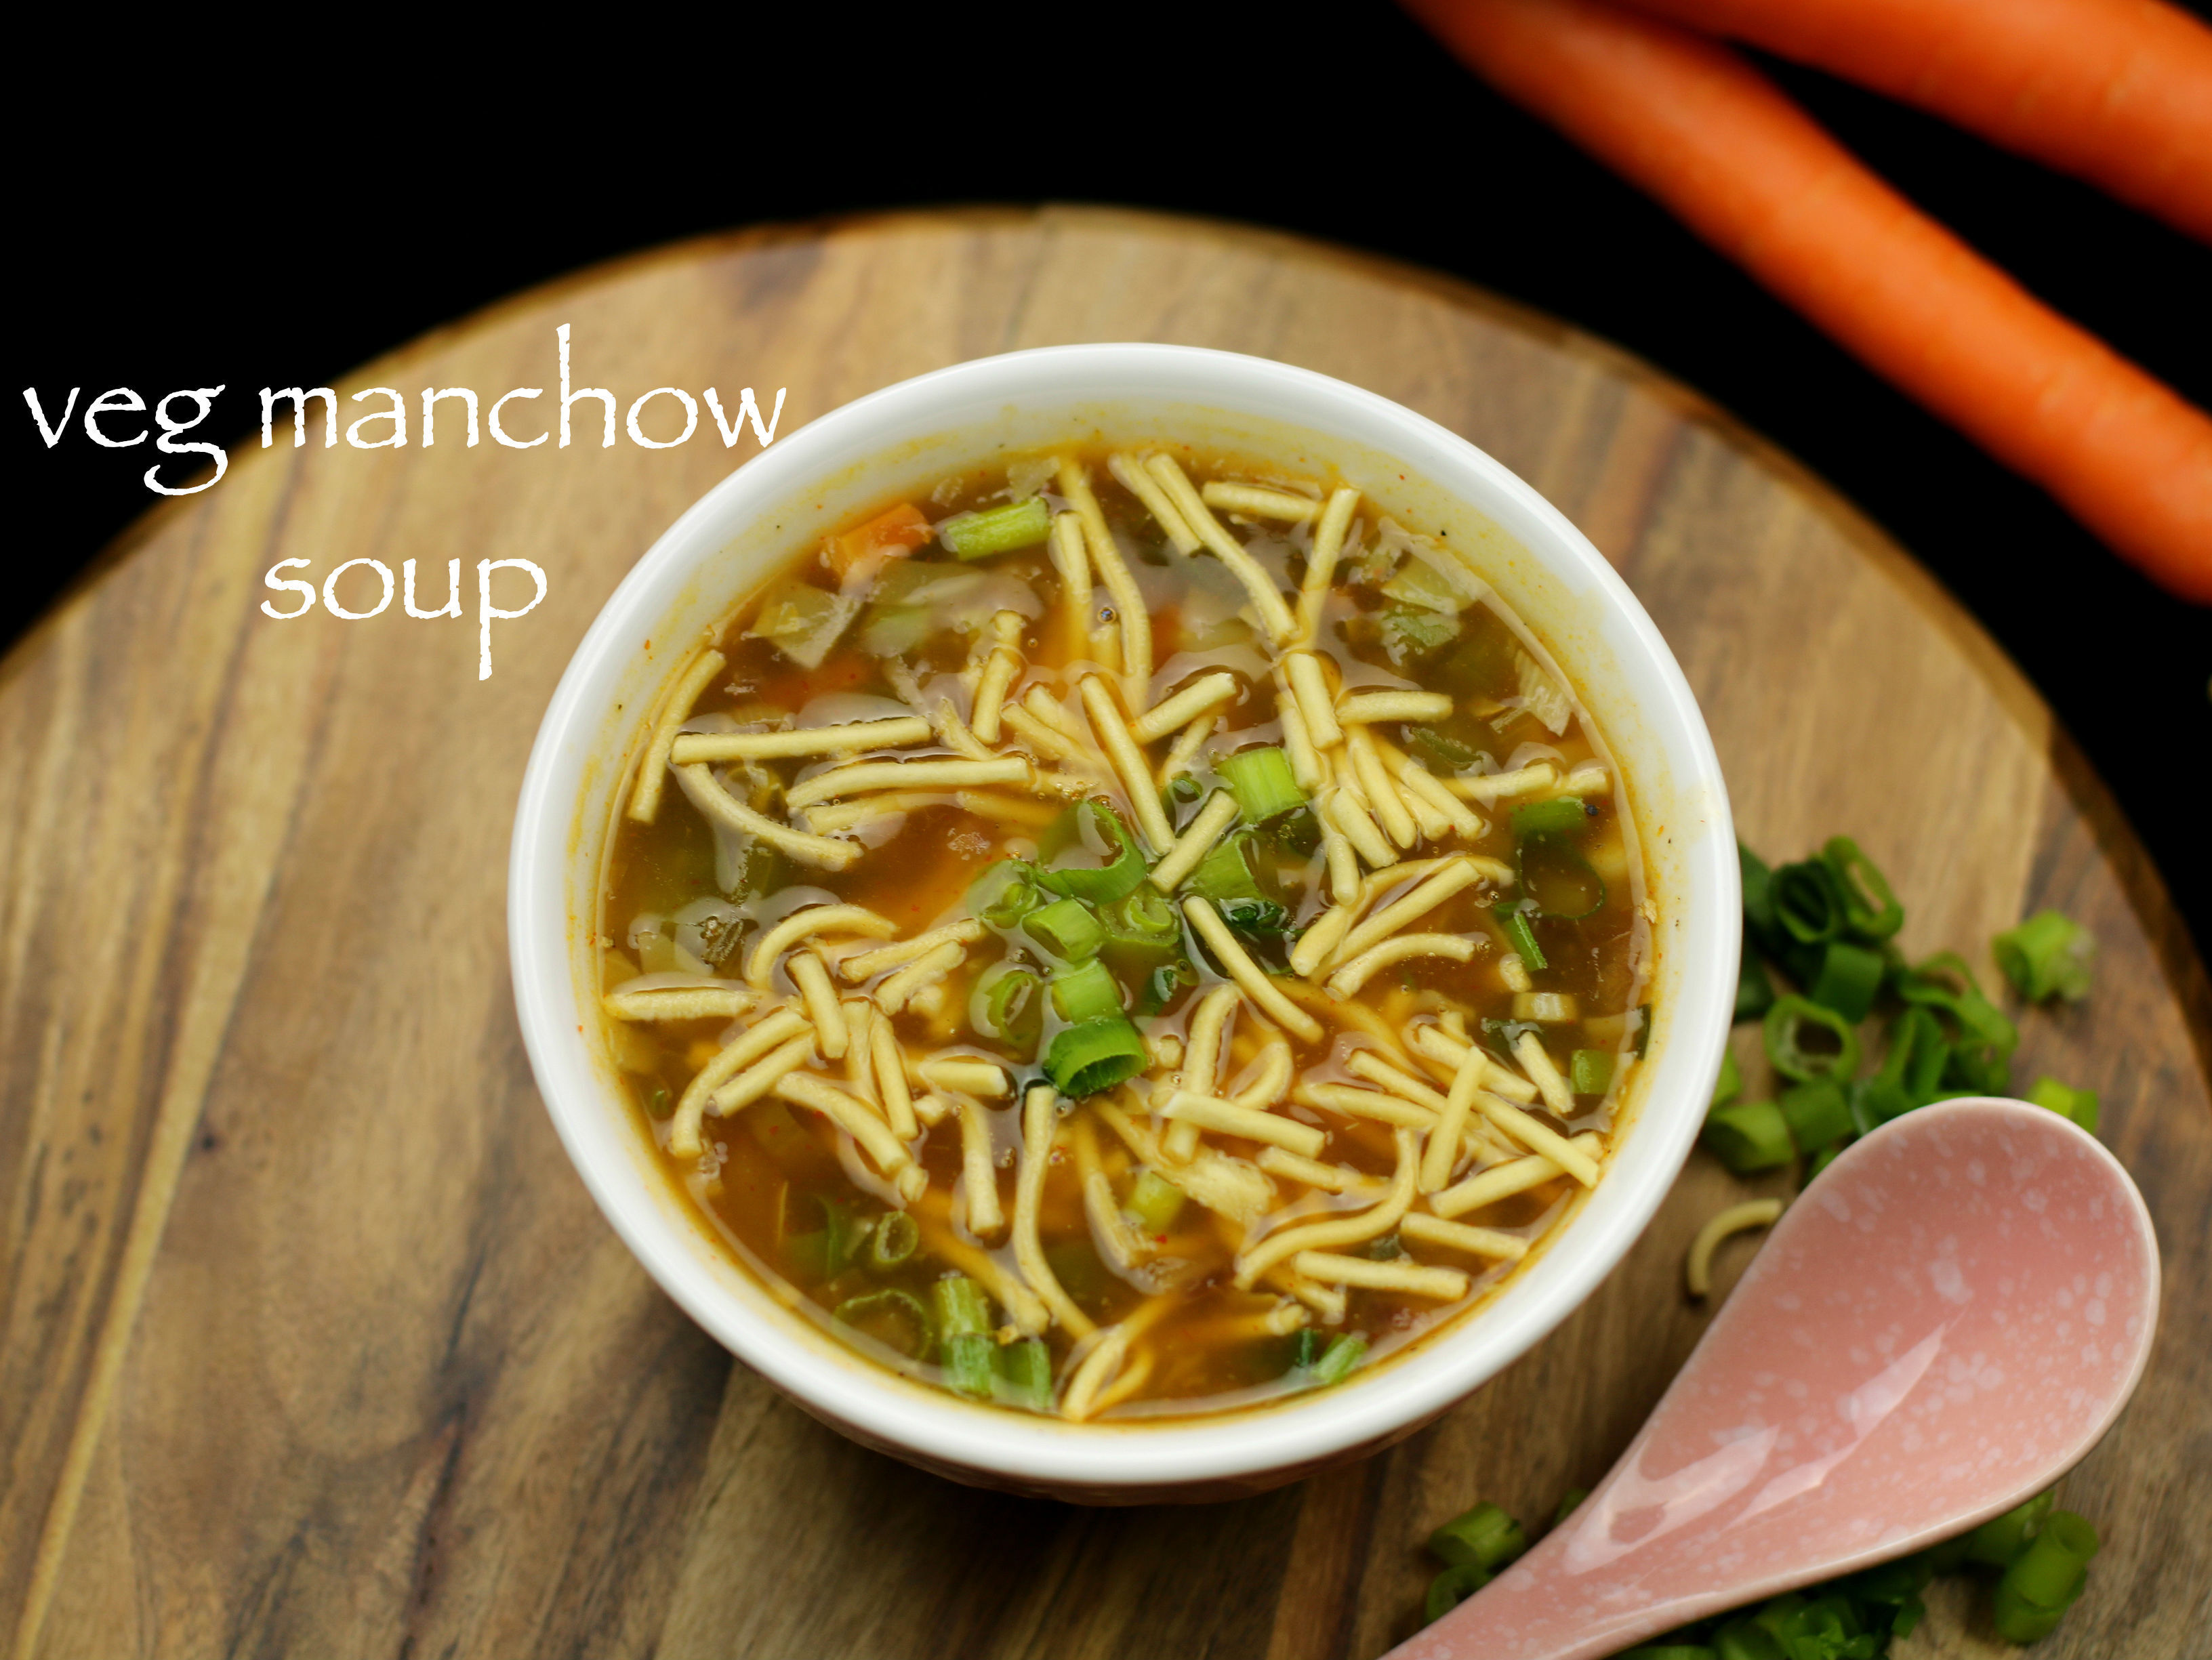 veg manchow soup recipe | vegetable manchow soup recipe